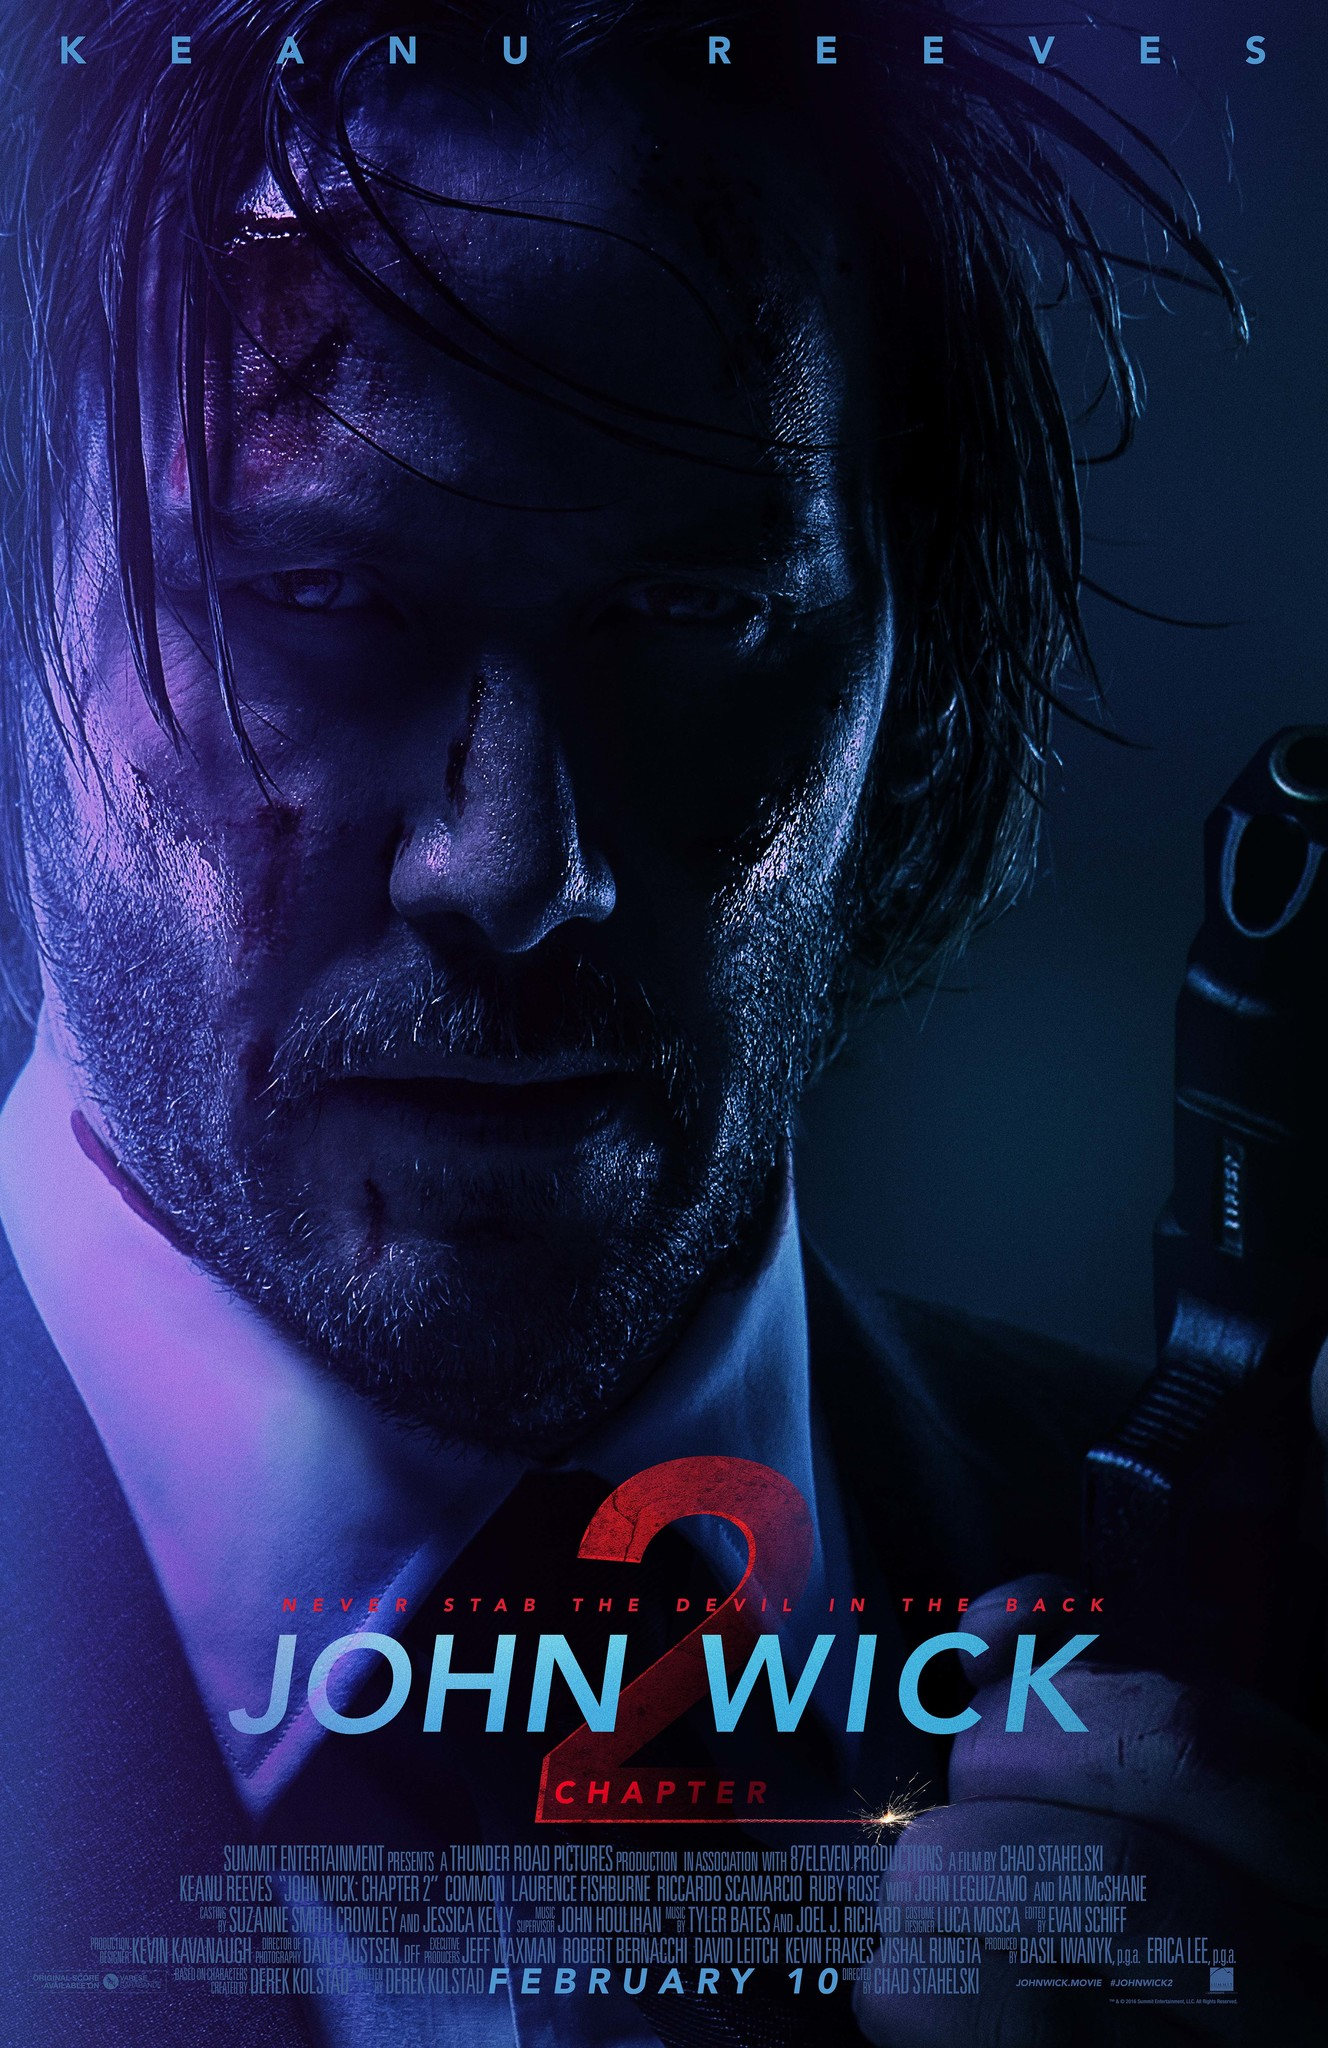 John Wick: Chapter 2 (2017) Technical Specifications